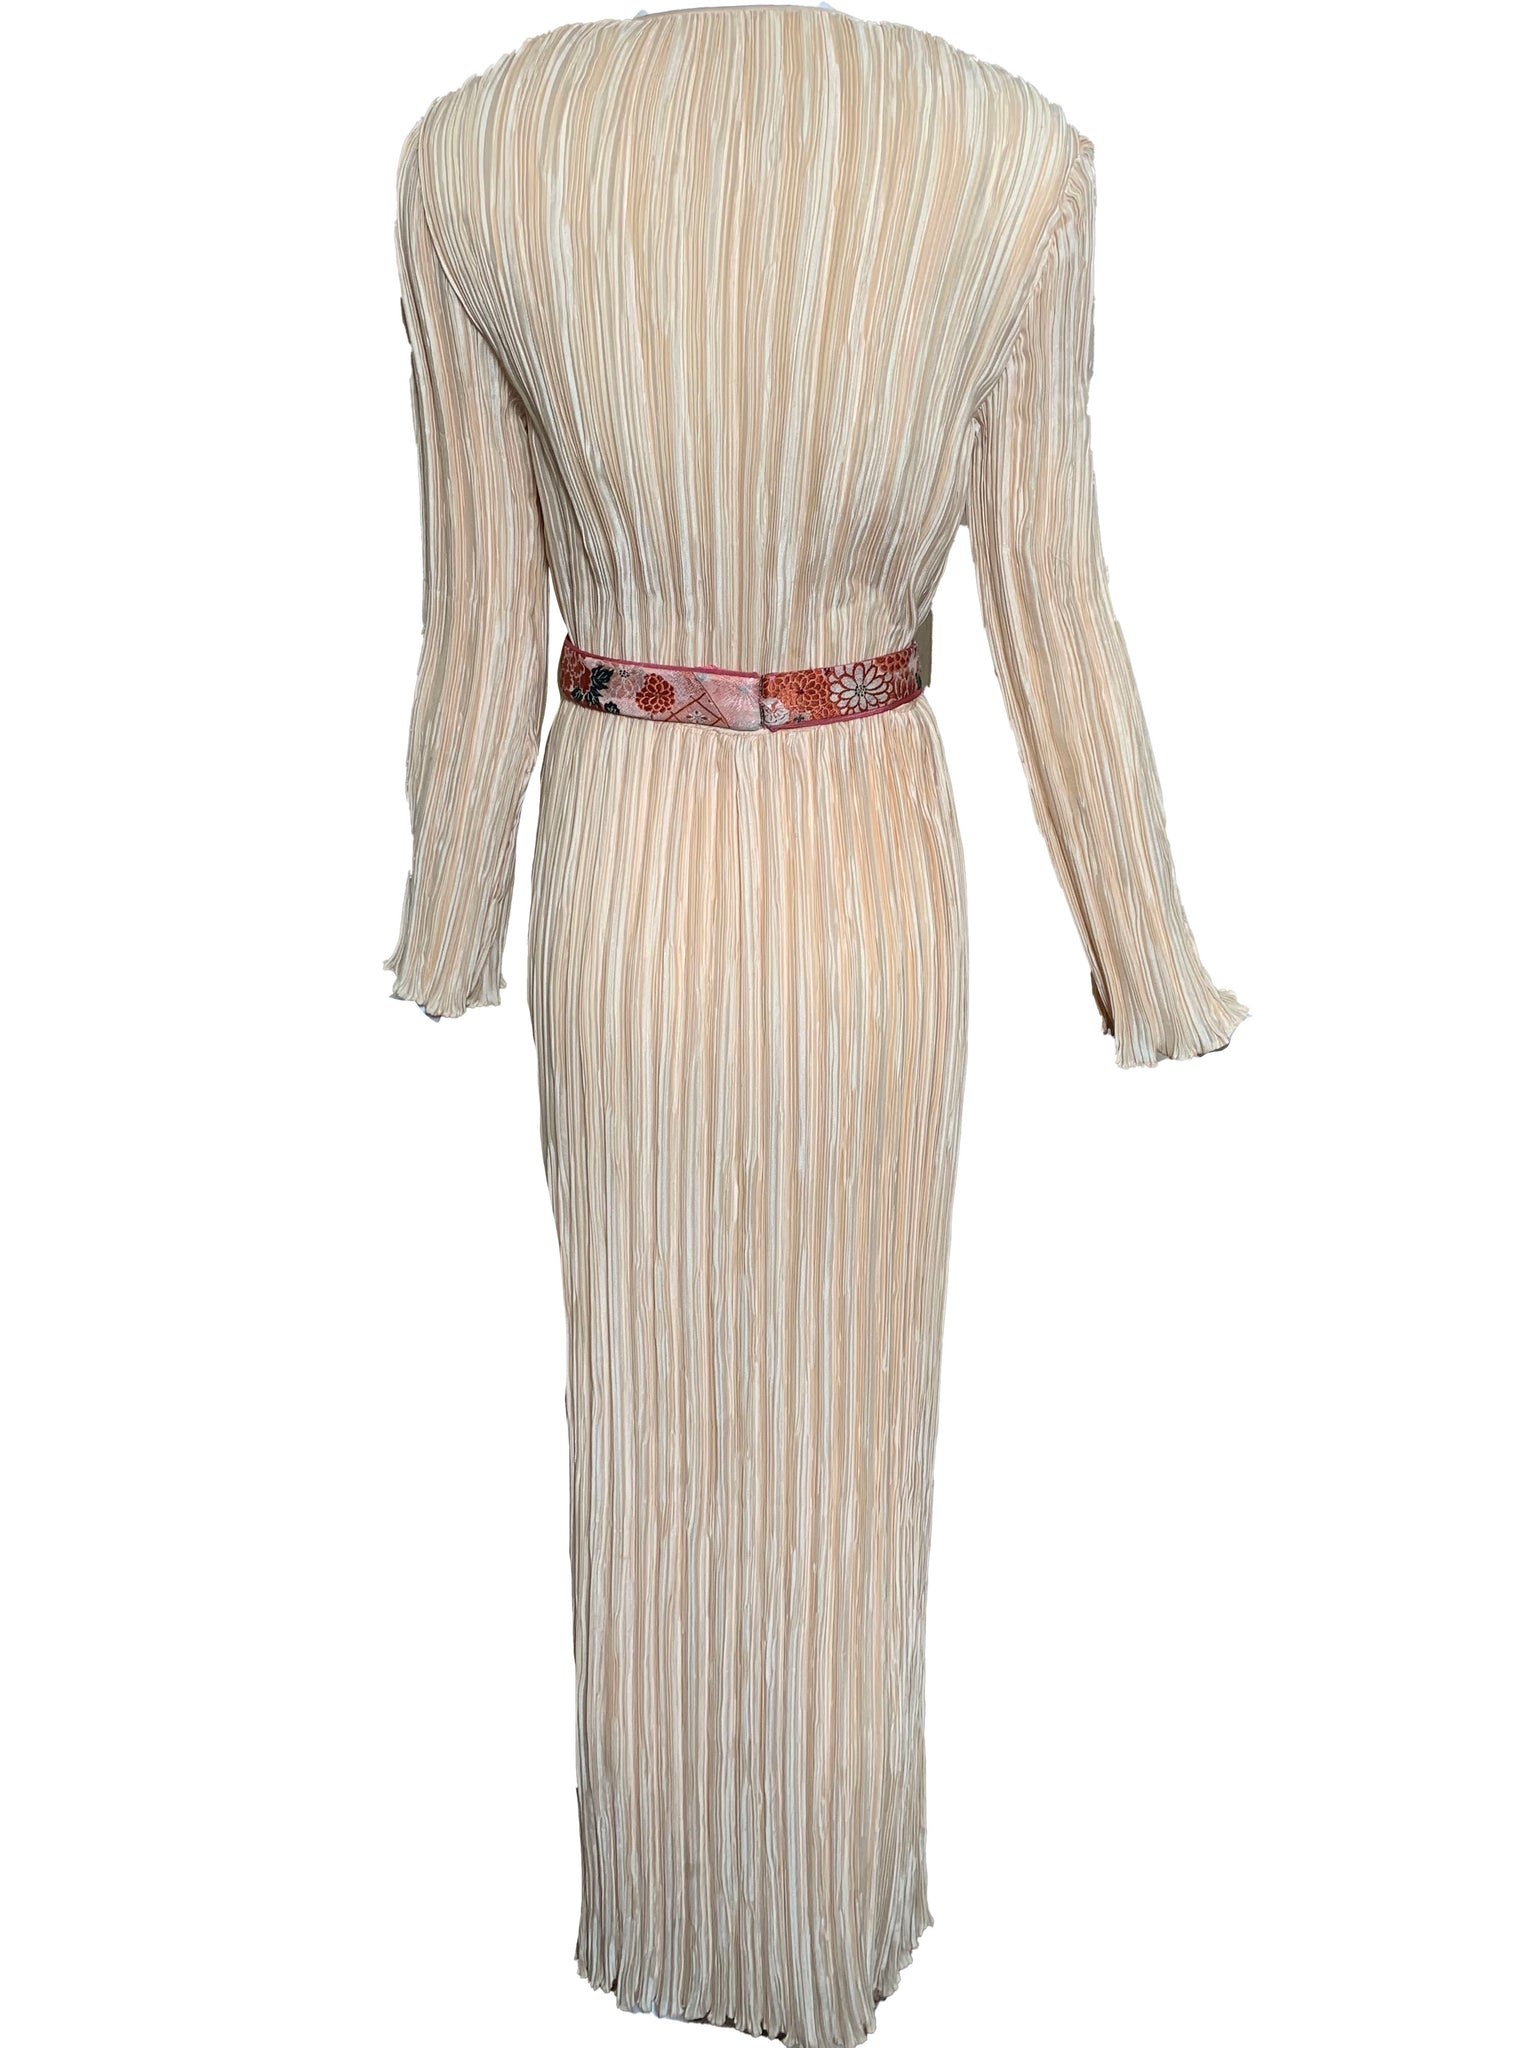 Mary Mcfadden Attribution Gown Peach Pleated Column with Belt BACK 3 of 5